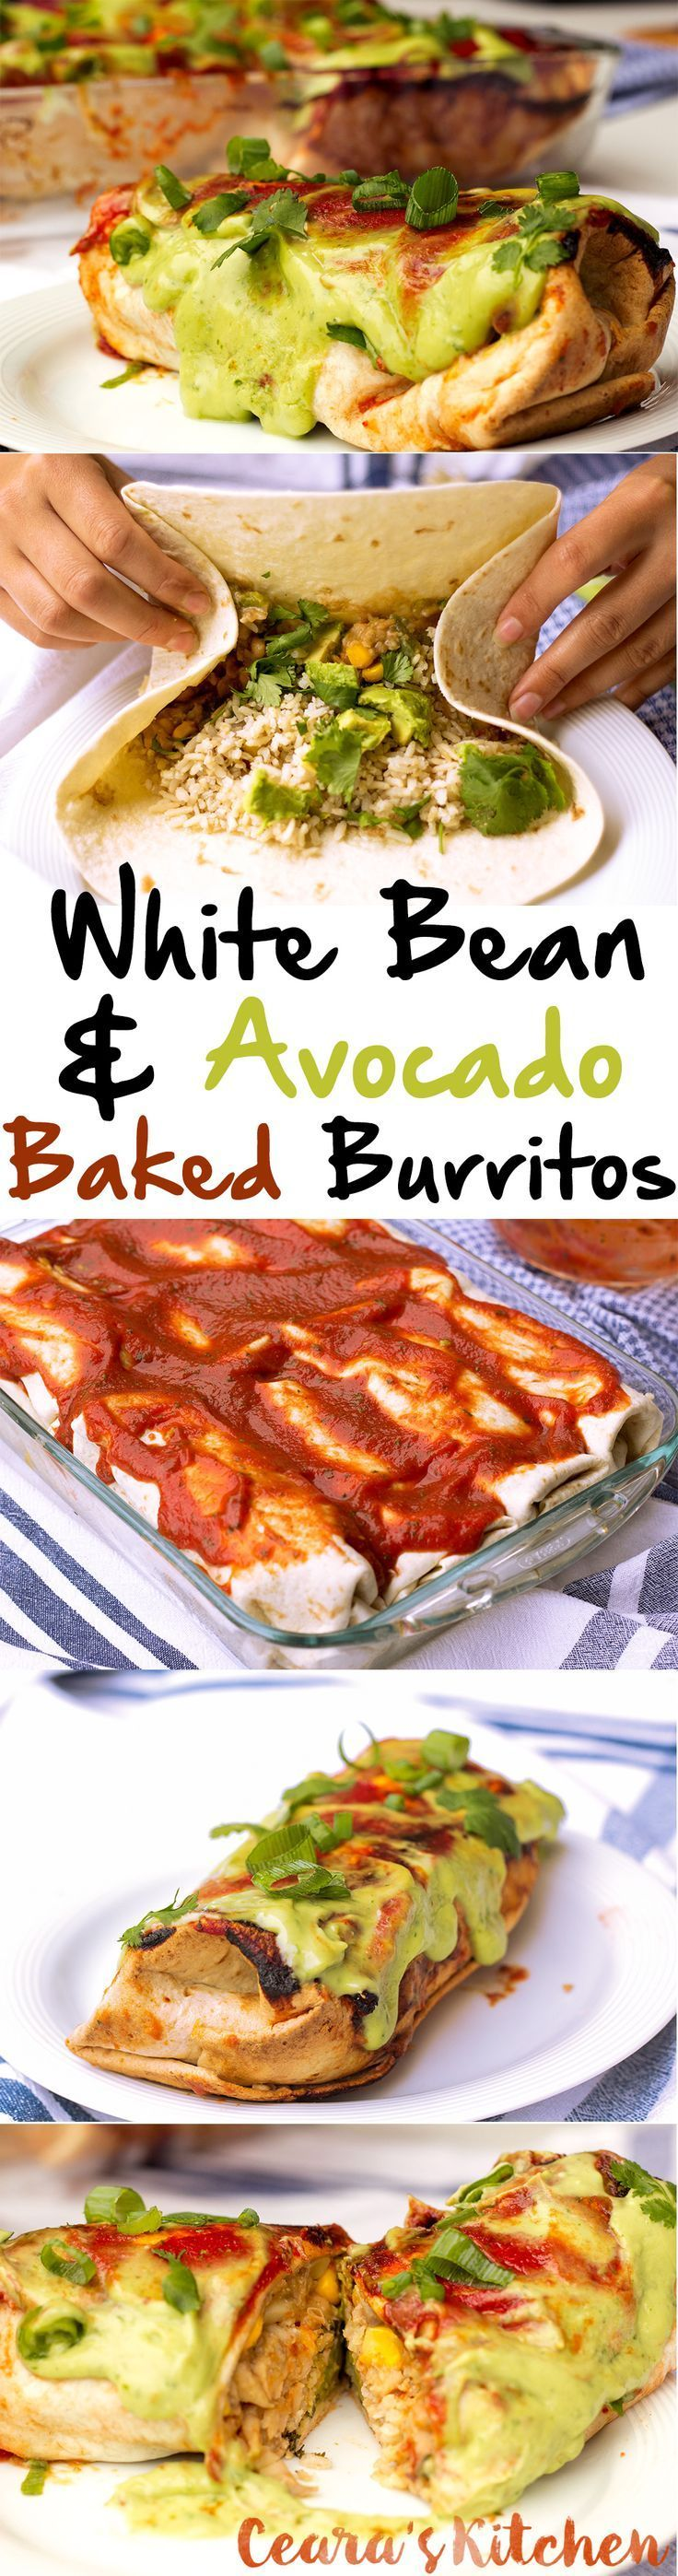 These White Bean and Avocado Baked Burritos make the perfect dinner - stuffed with white bean, mushrooms, lots of avocado, then topped with a zesty tomato sauce.